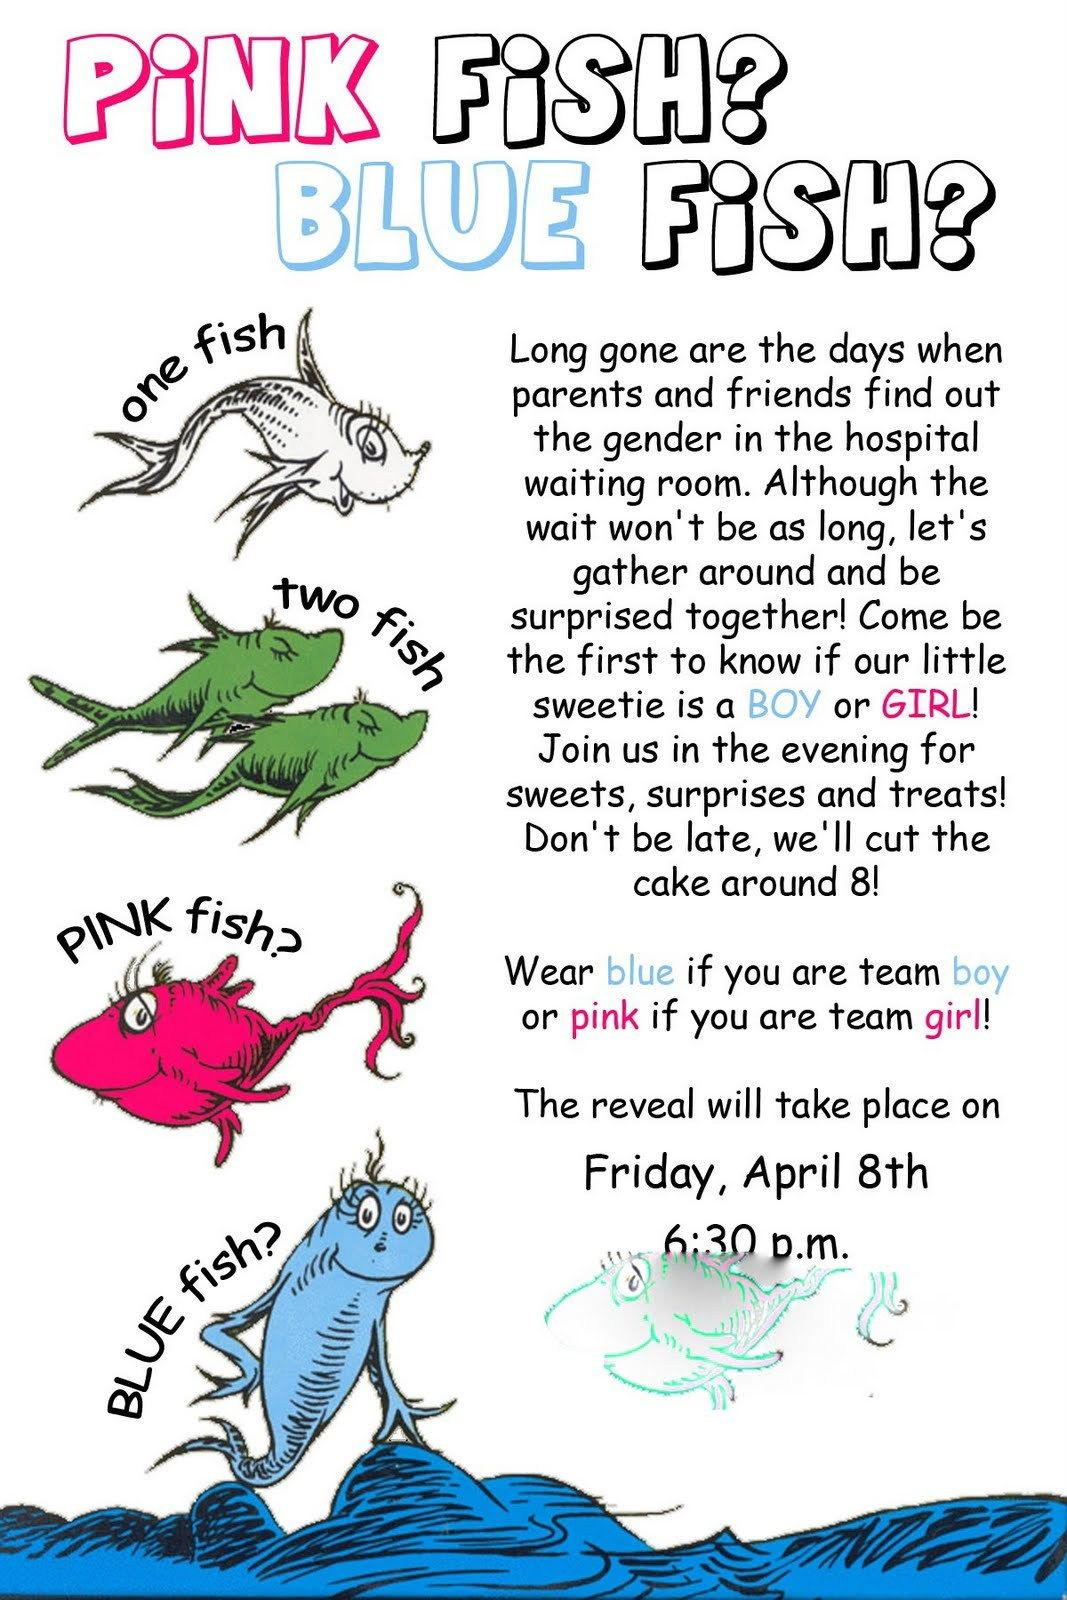 18 Super Fun And Cute Gender Reveal Poems And Riddles Baby Gender Reveal Party Baby Reveal Party Gender Reveal Party